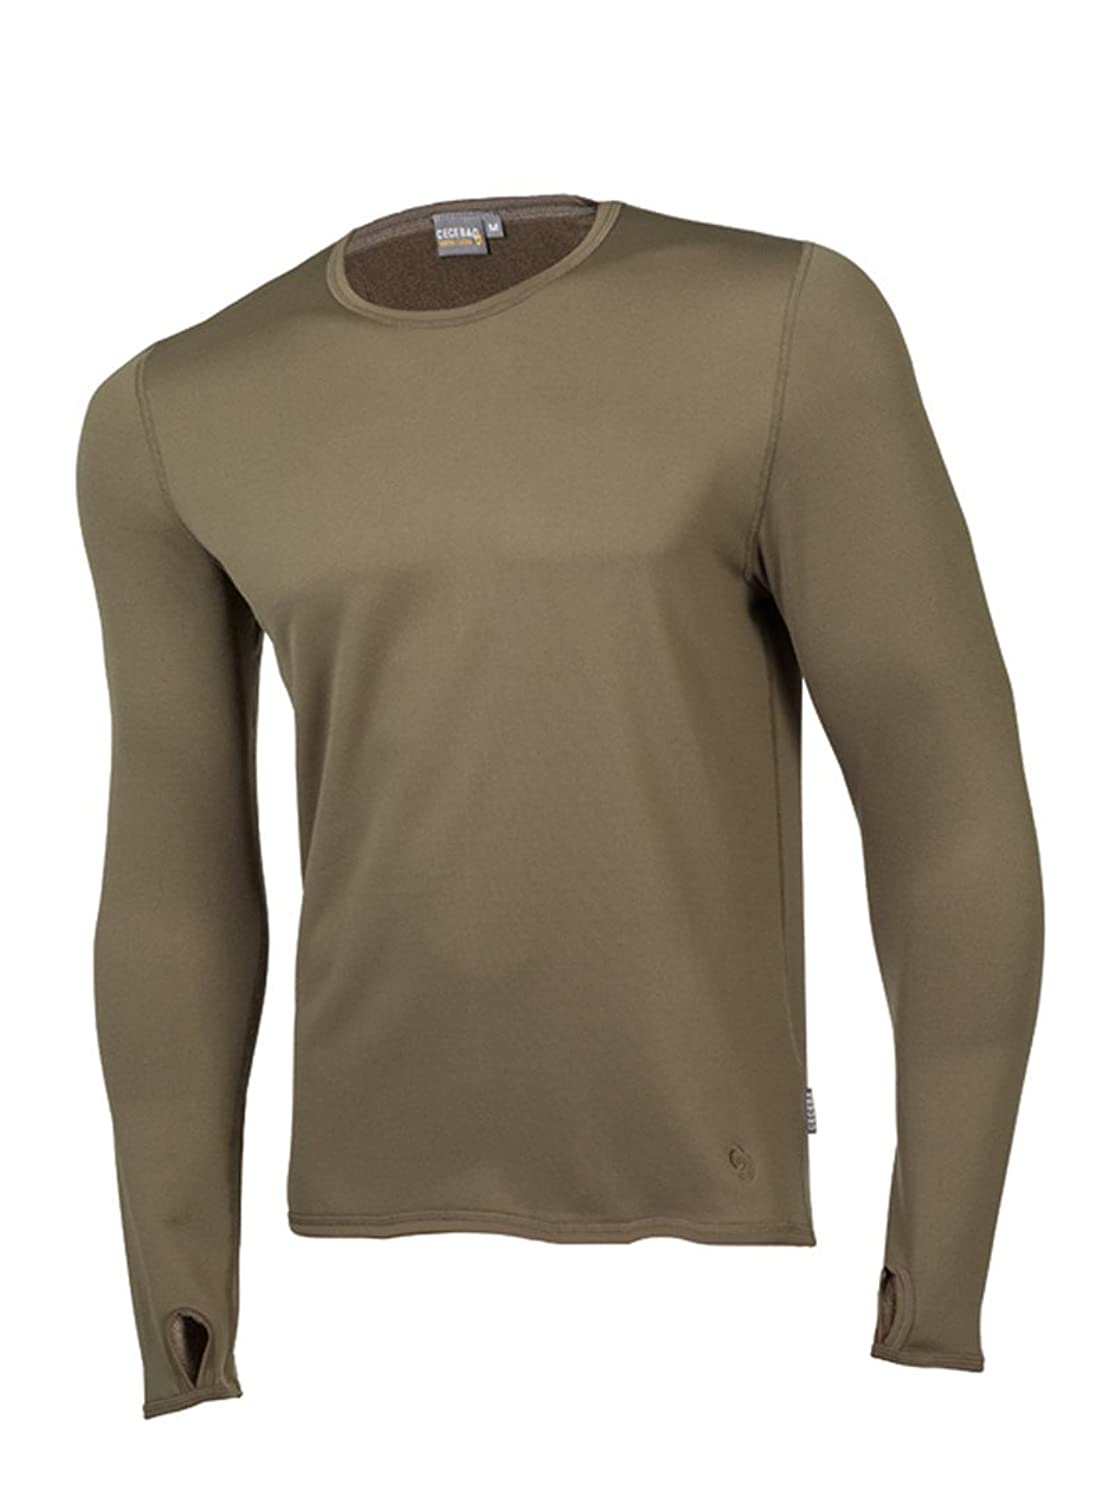 Ceceba 1806 Thermal Control Long Shirt Doppelpack Olive M bis 3XL